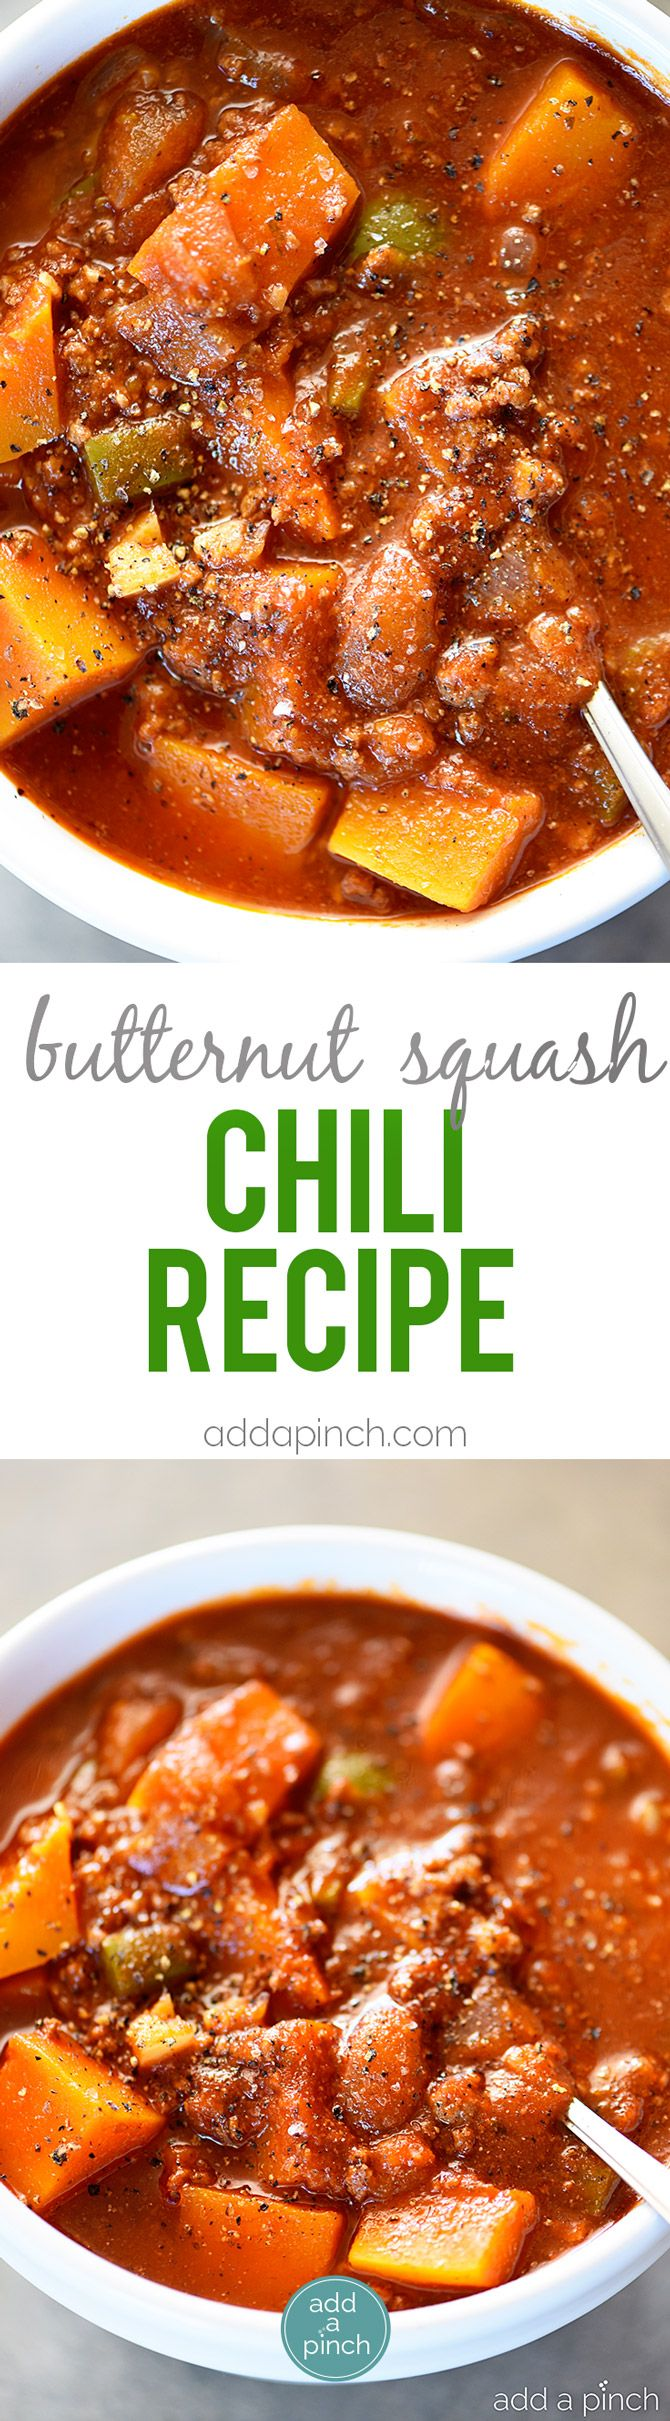 Butternut Squash Chili recipe made with ground beef or turkey, butternut squash, vegetables, and spices makes a hearty and delicious chili recipe! Recipe includes changes for Paleo, Whole 30 and Vegetarian needs. Also includes make ahead and freezer instructions! // addapinch.com